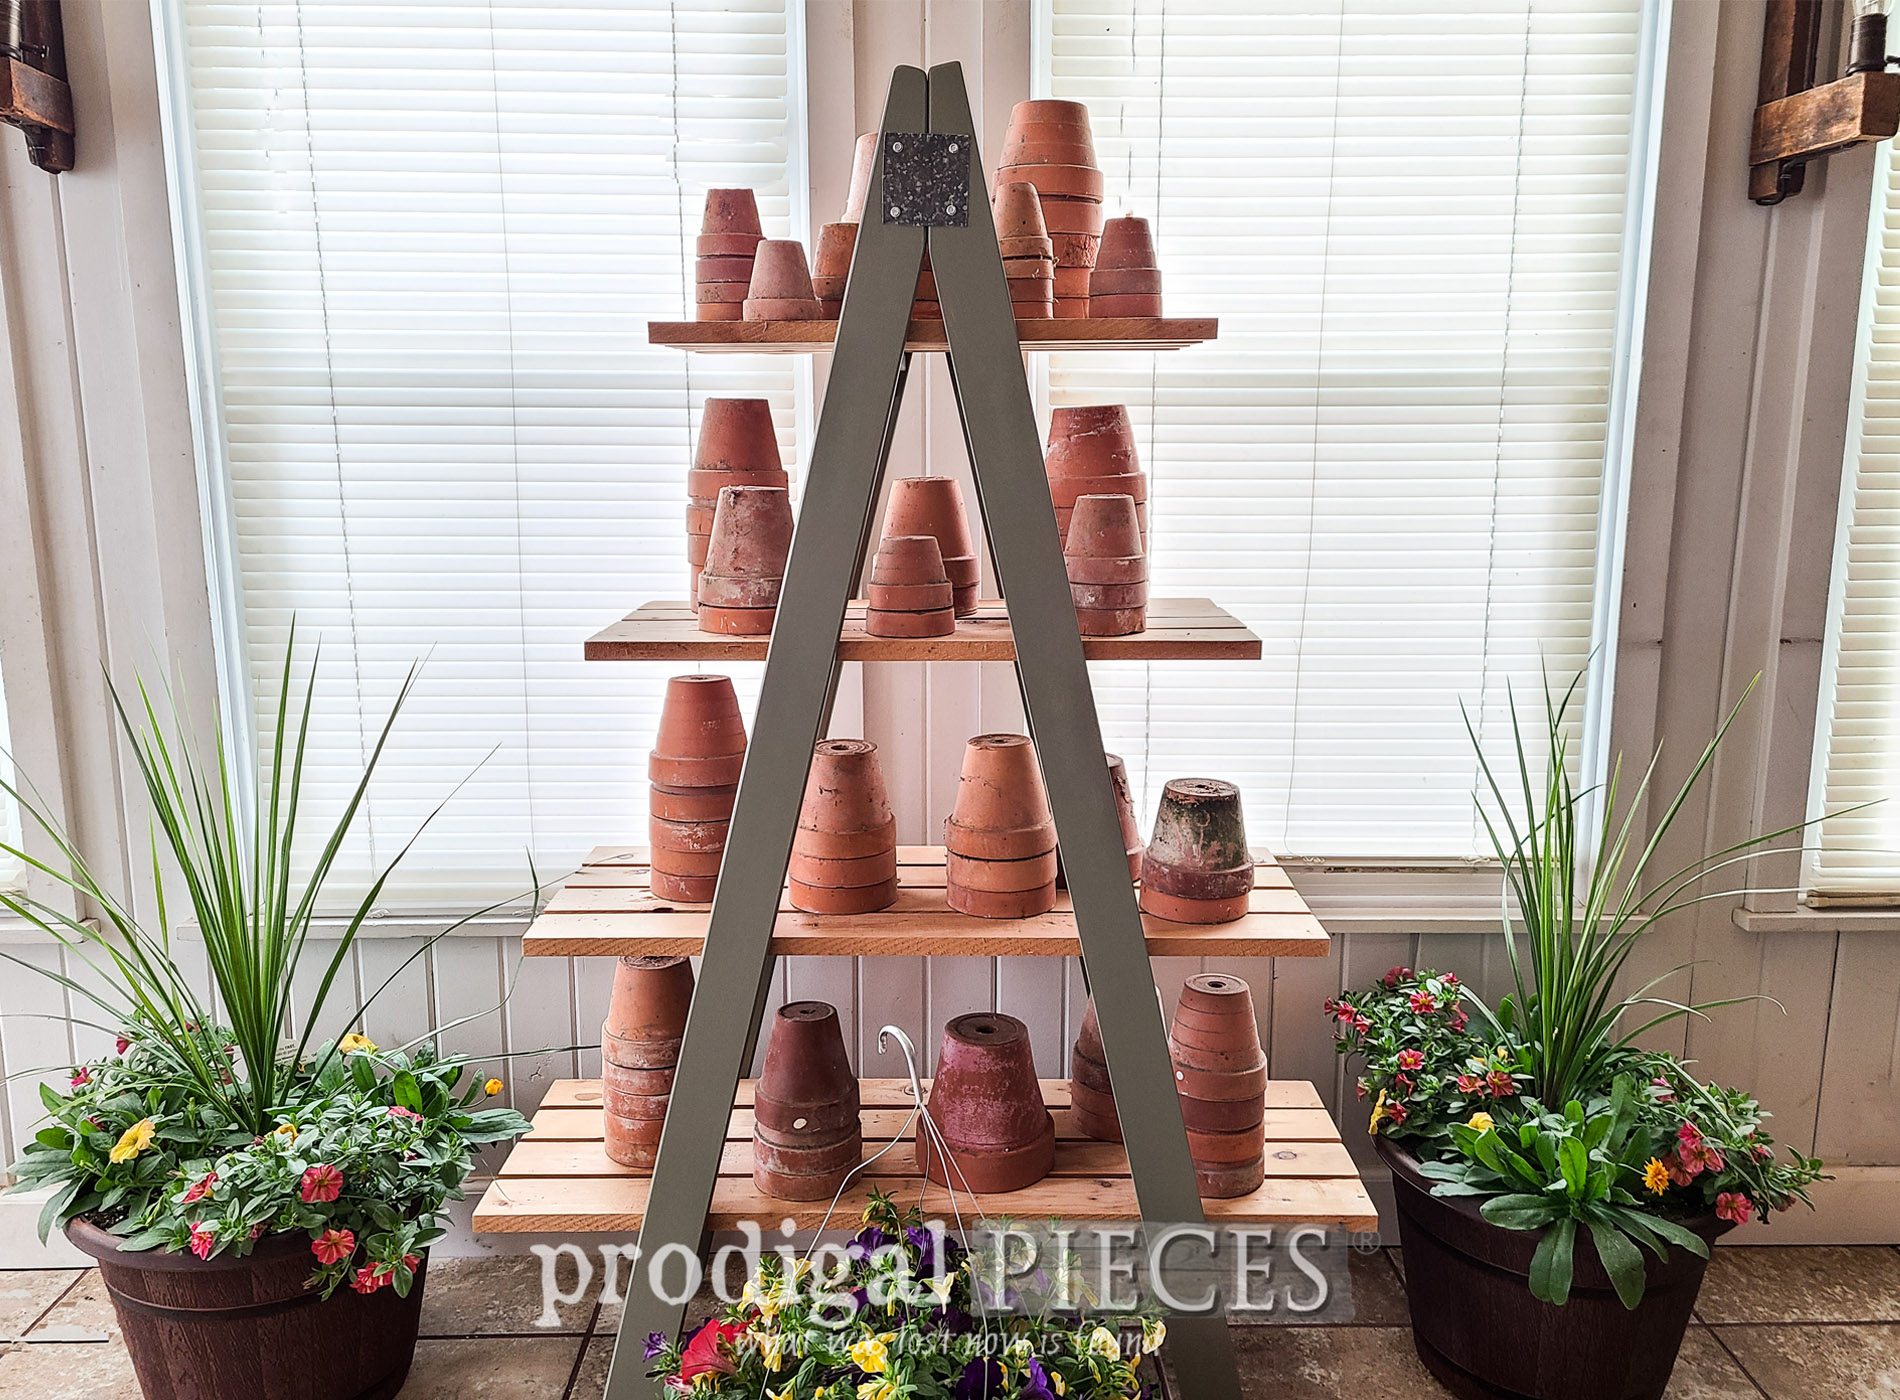 Featured Upcycled Bunk Bed Ladders into Tiered Shelf by Larissa of Prodigal Pieces | prodigalpieces.com #prodigalpieces #diy #upcycled #farmhouse #garden #home #homedecor